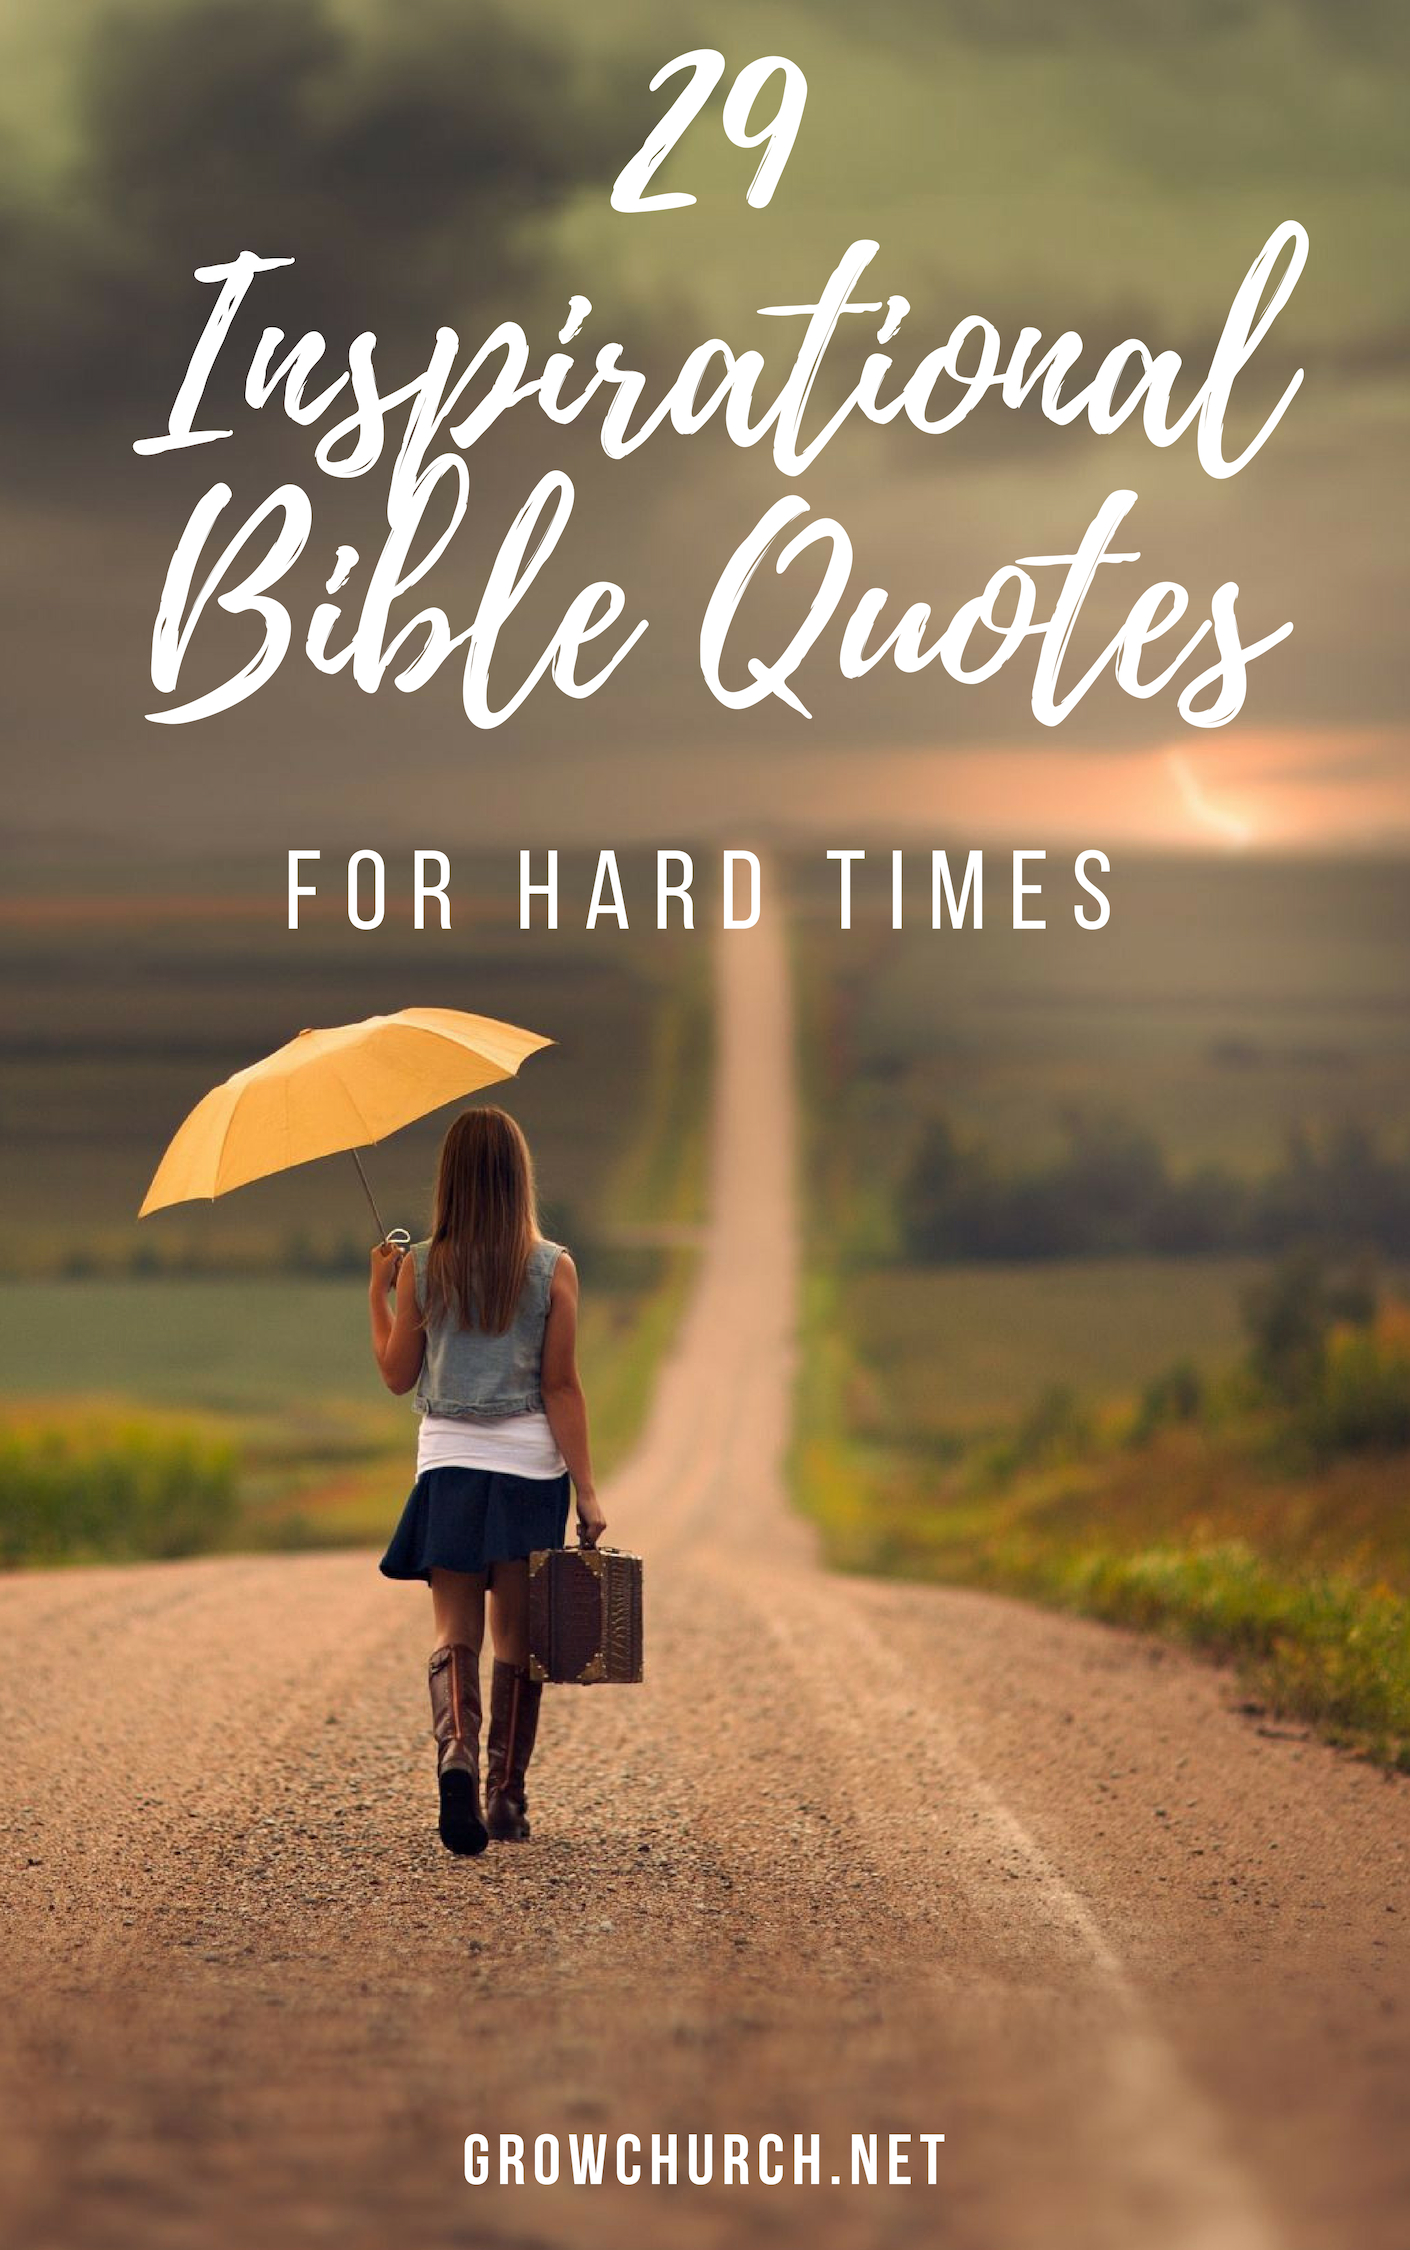 29 Best Inspirational Bible Quotes For Hard Times